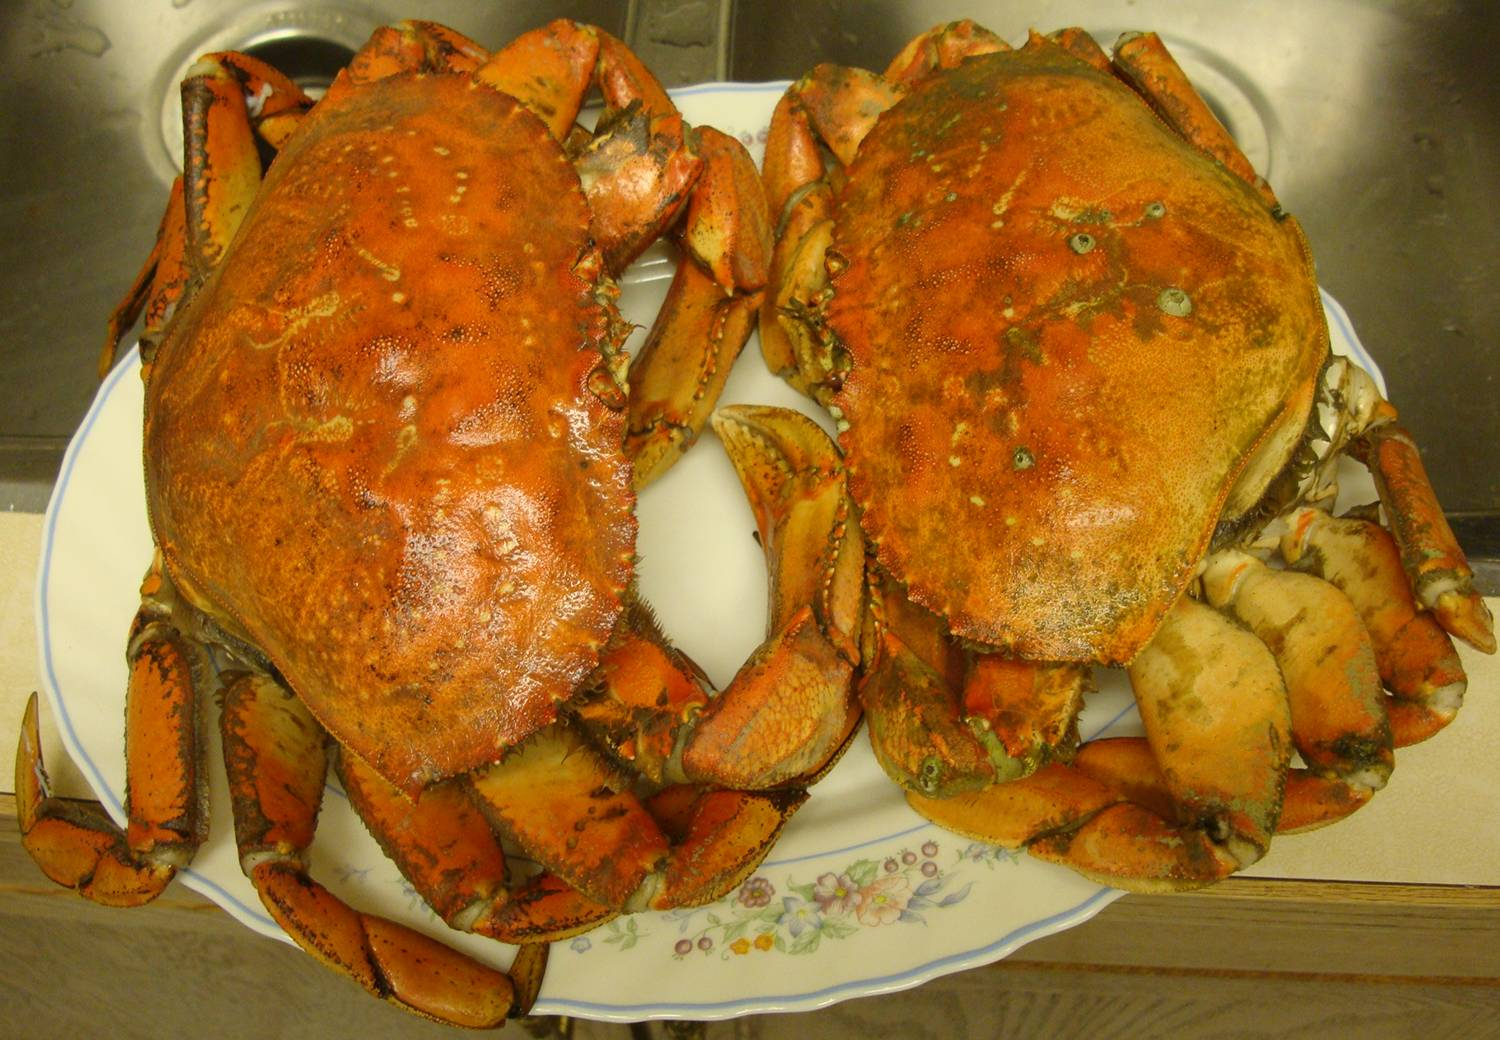 pictture:  two large Dungeness crabs, steamed, cleaned and ready to eat.  Thanks Don.